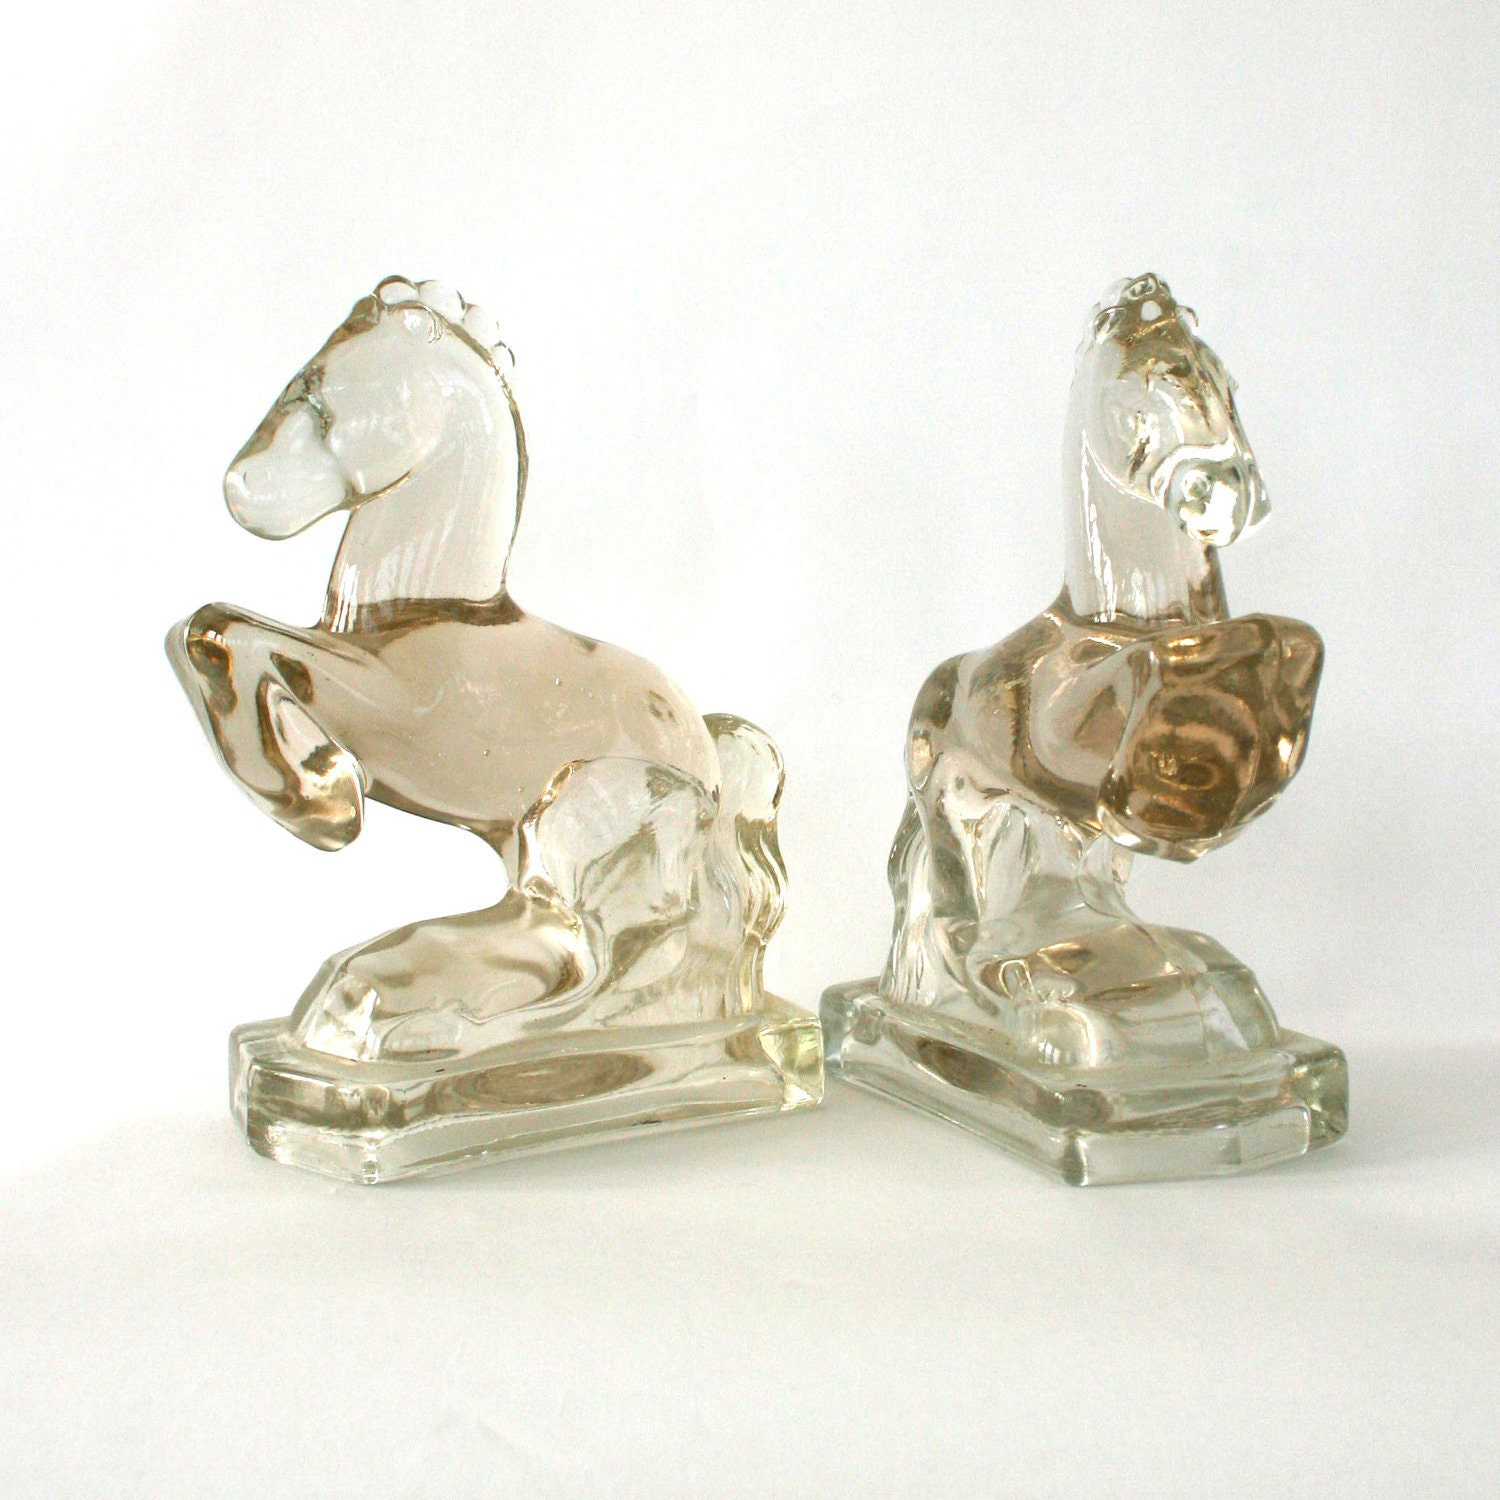 Vintage Glass Horse Bookends. Equestrian Men Centric Retro Mid Century Unisex Office Library Study